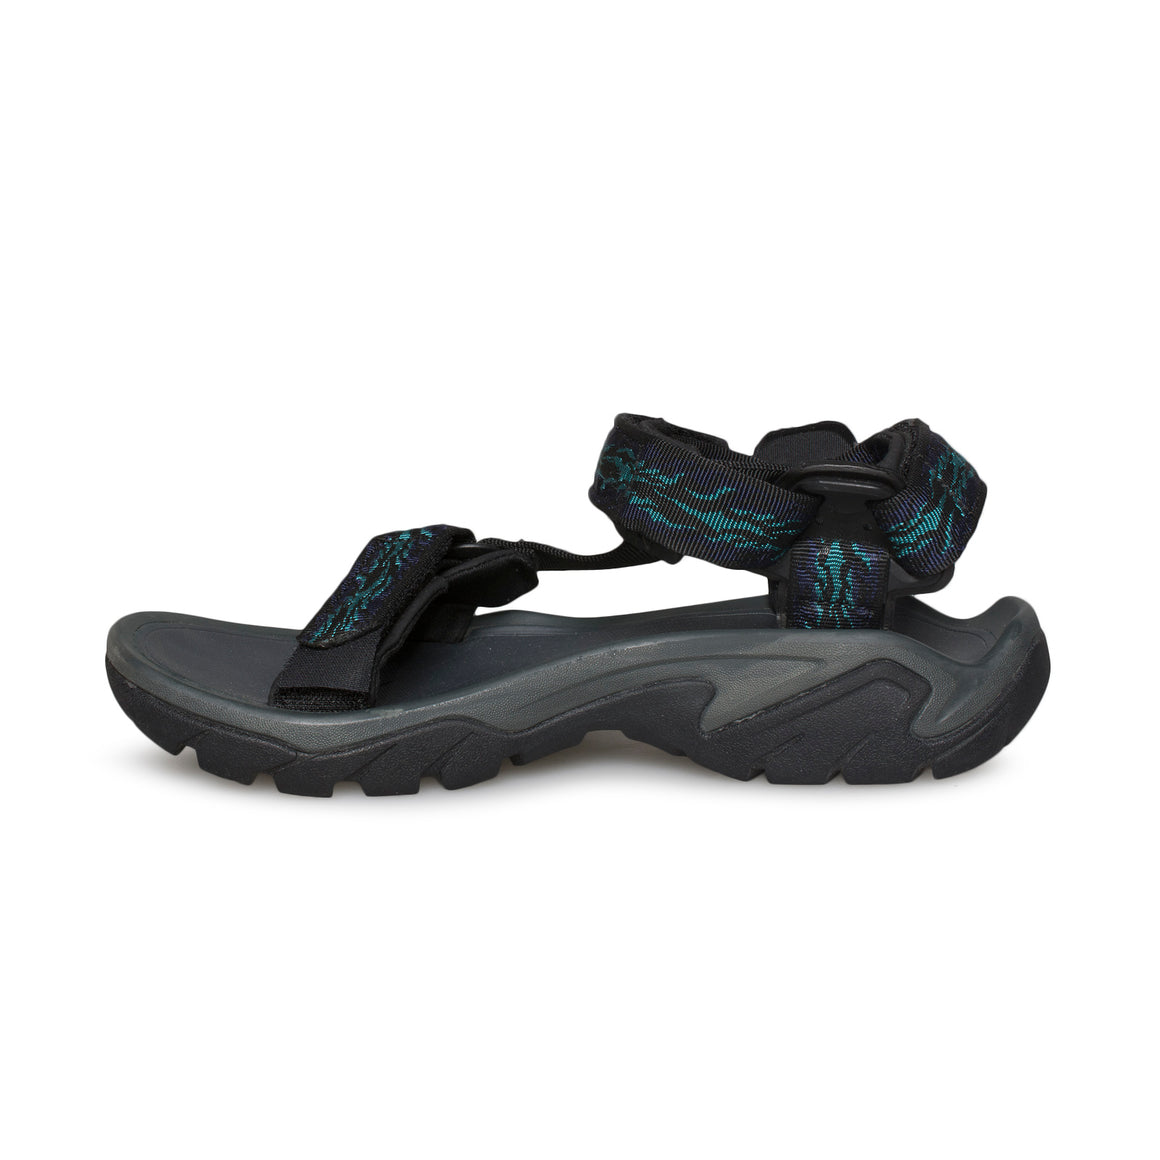 Teva Terra FI 5 Universal Manzanita Dark Eclipse Sandals - Men's